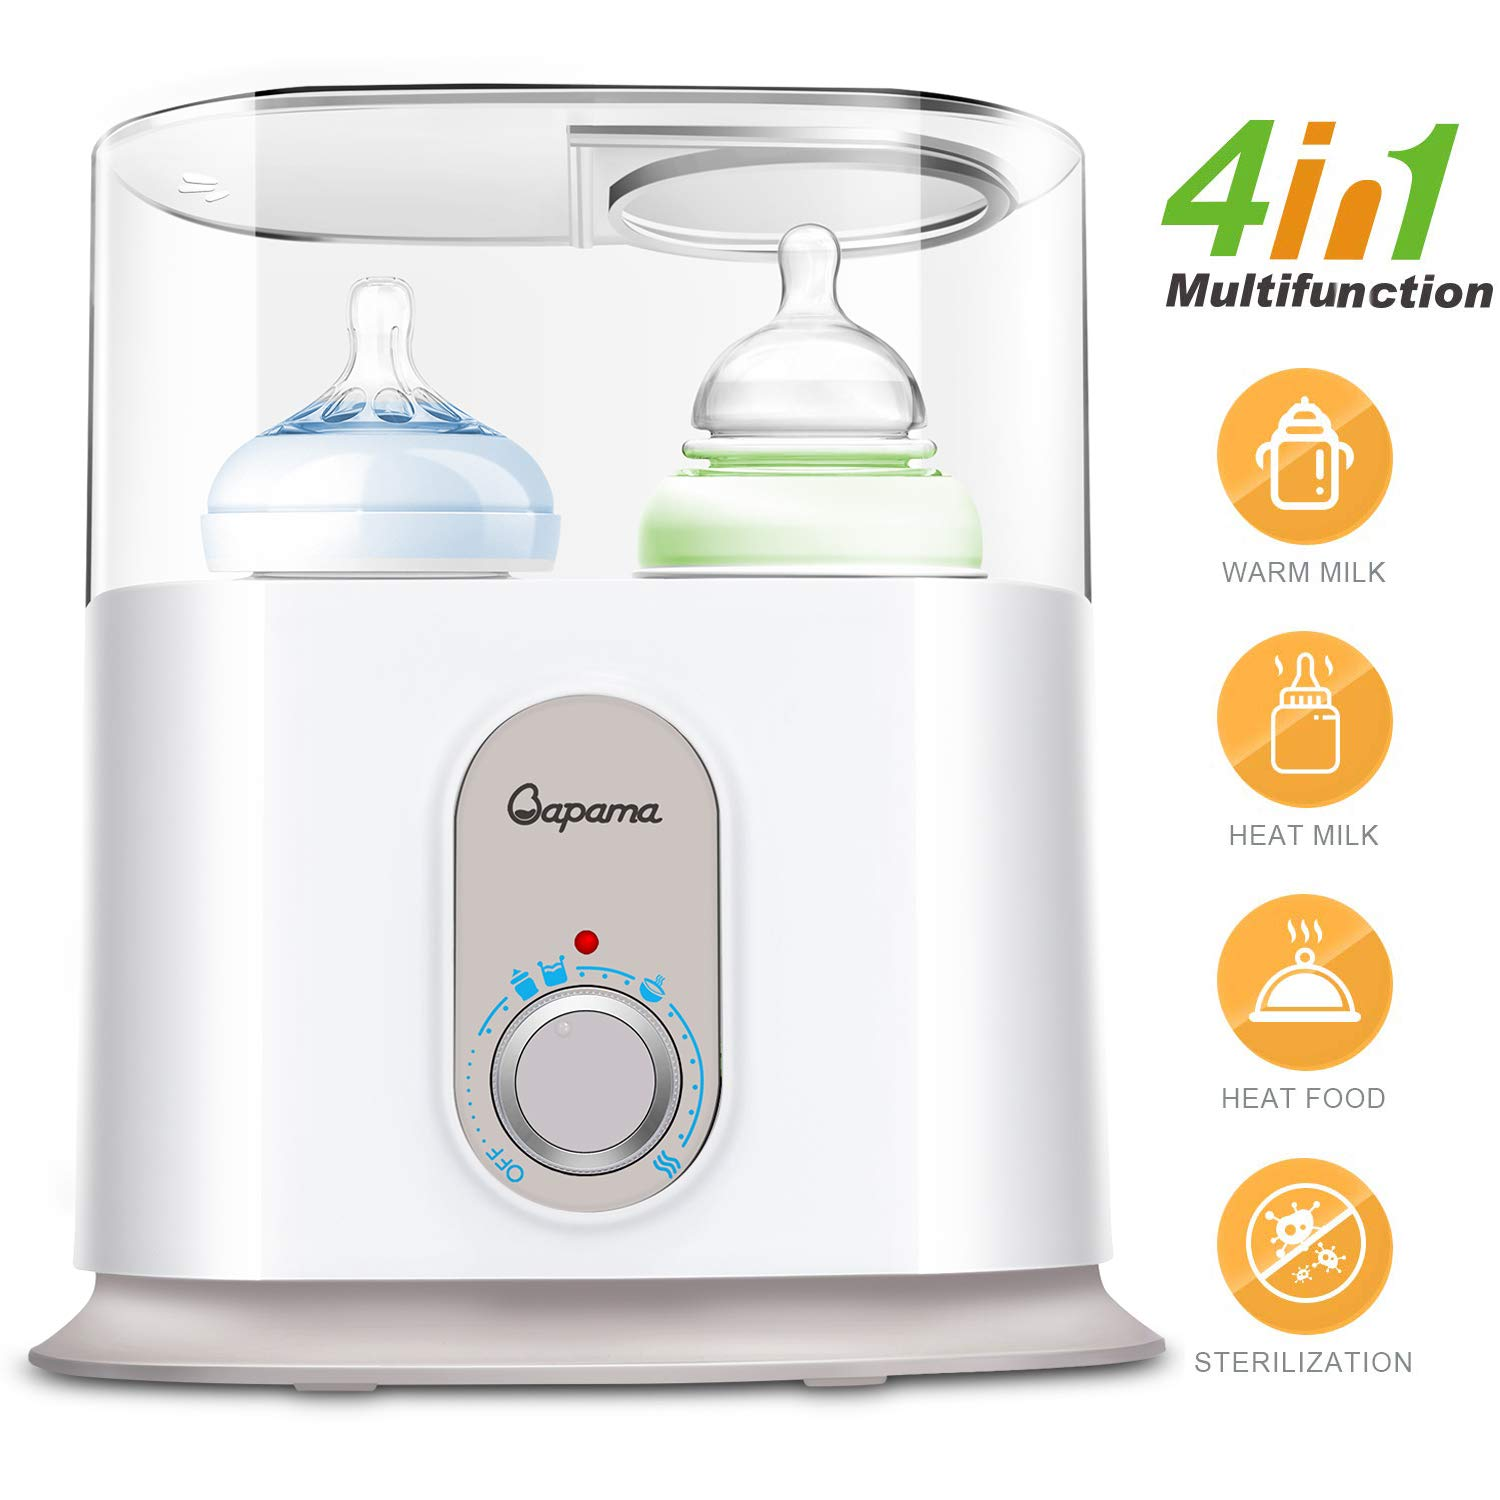 Baby Bottle Warmer, 4 in 1 Function with Automatical Power-Off,Precise Temperature Control and Fast Warming,Fit Most Brands Baby Bottles